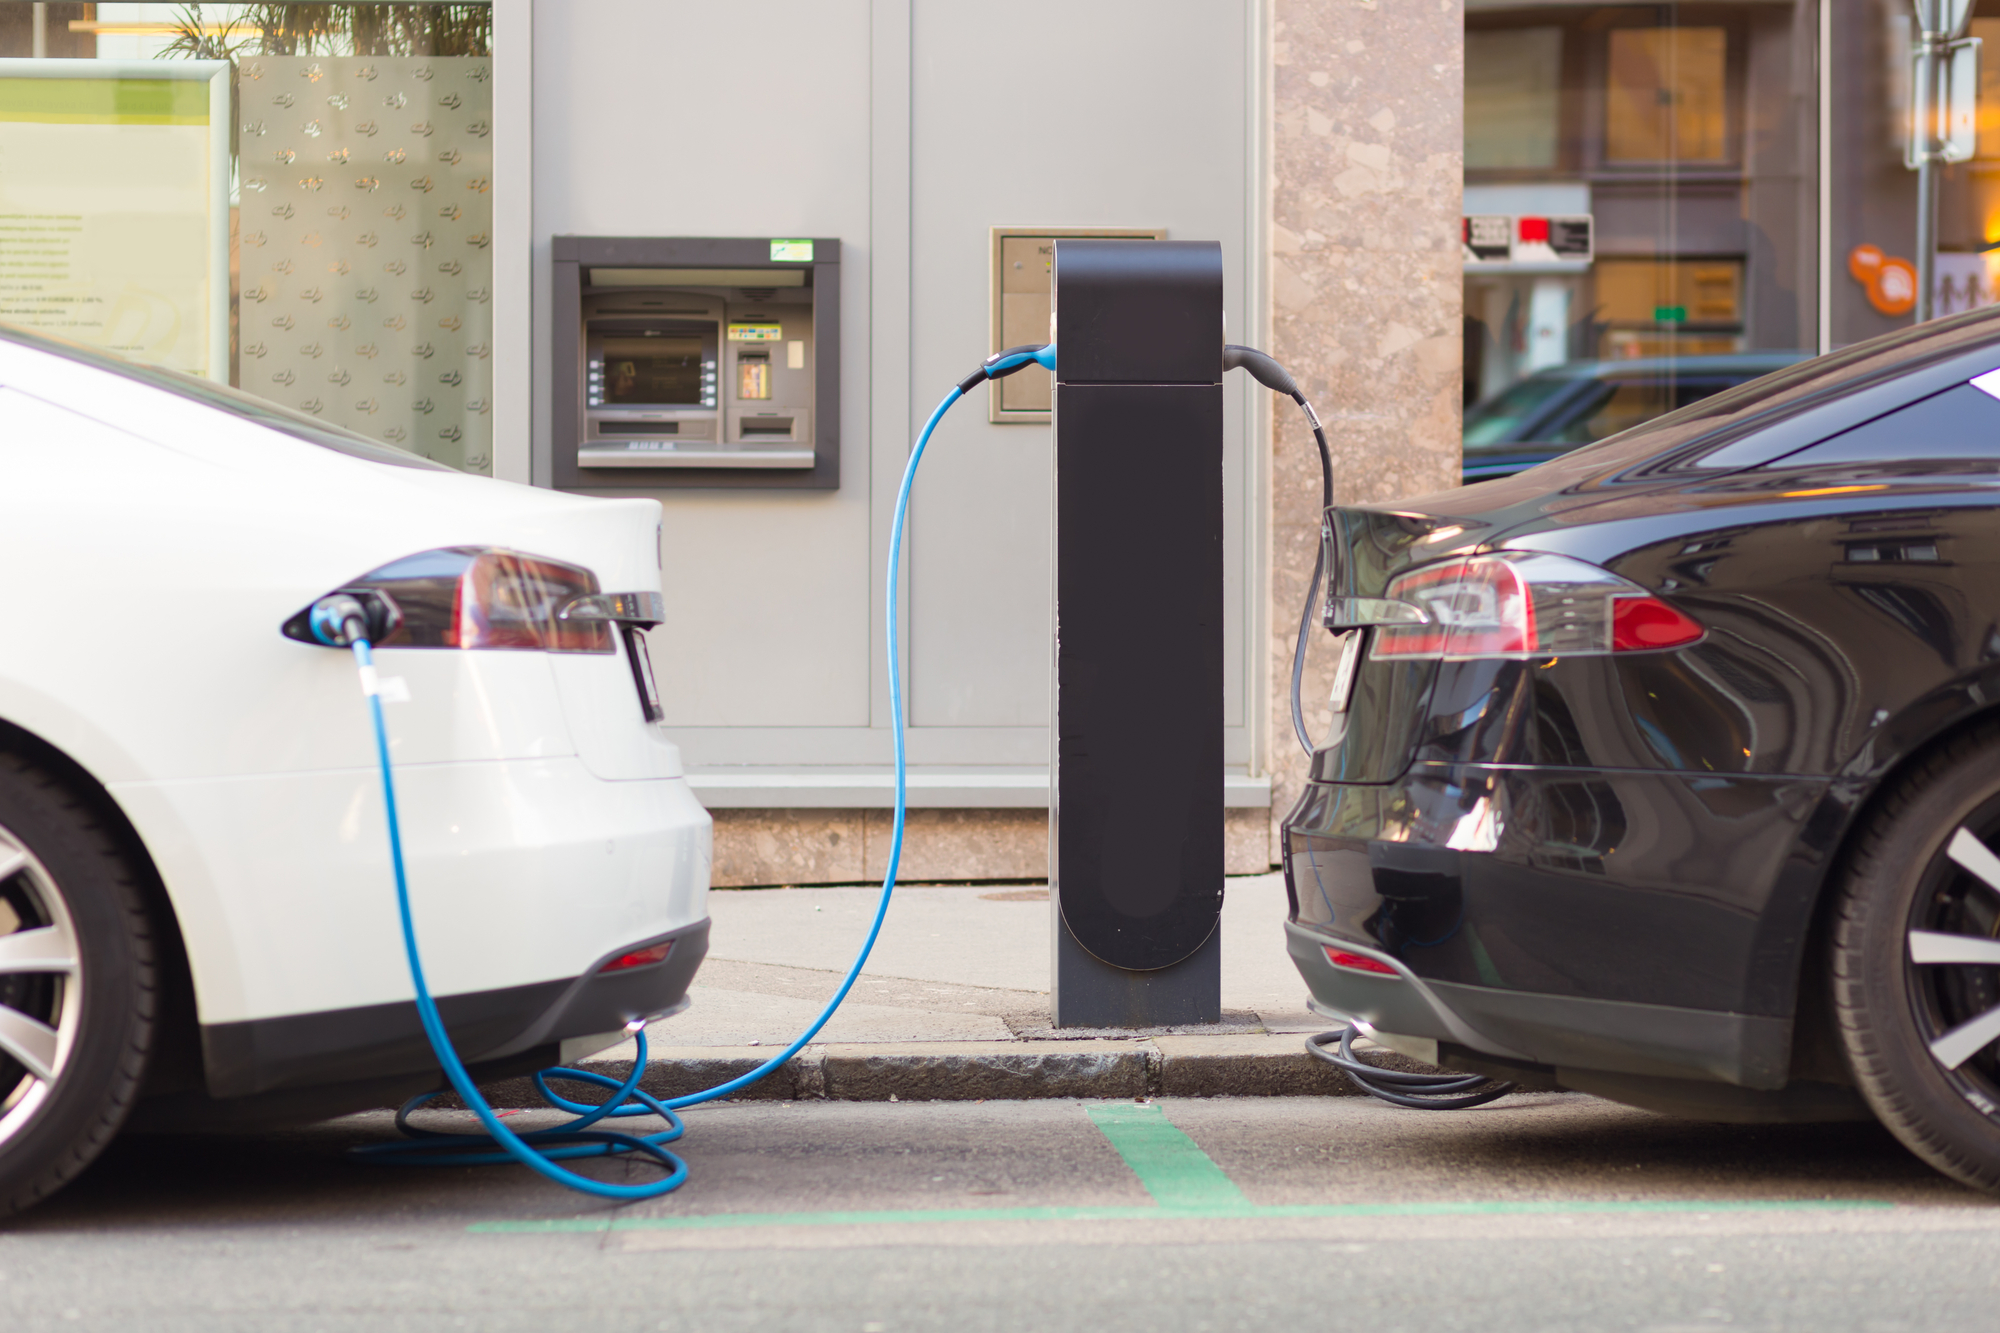 Electric Vehicles and Charging Systems